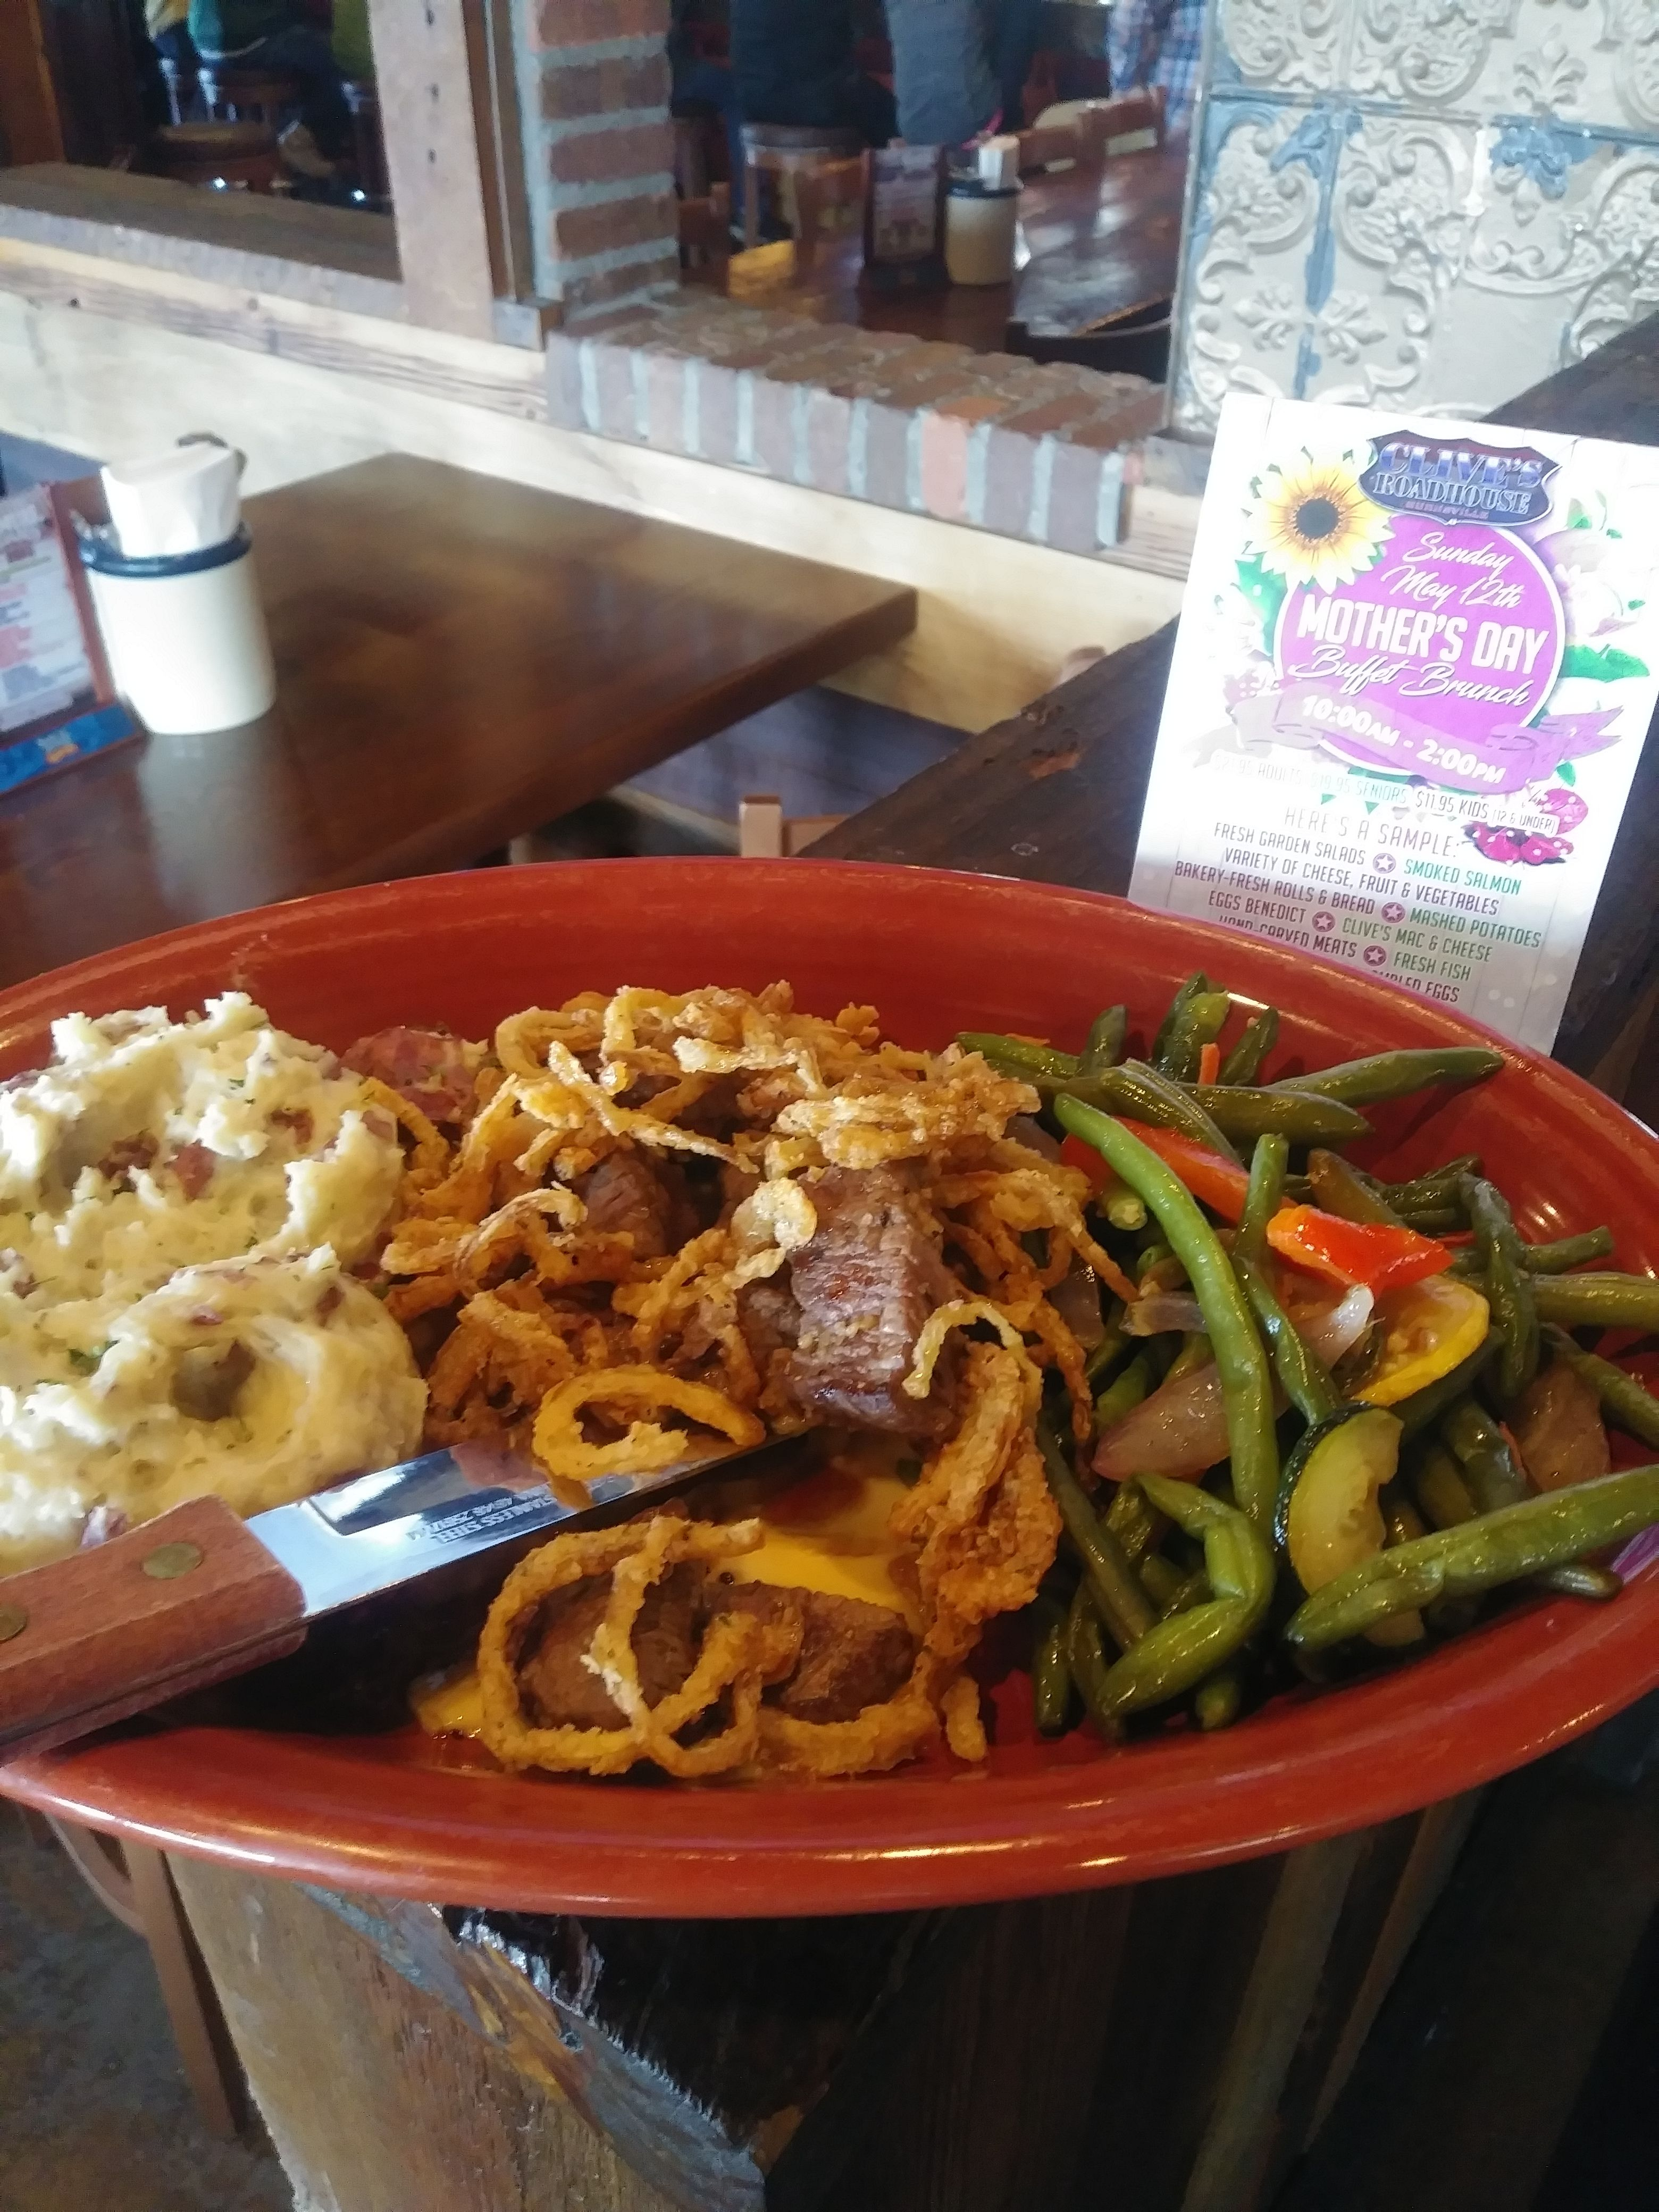 Tonight S Dinner Special Is A New Menu Item Drunken Beef Tips Food Clivesroadhouse Foodie Goodfood Dining Restaurants Lunch Specials Dinner Food